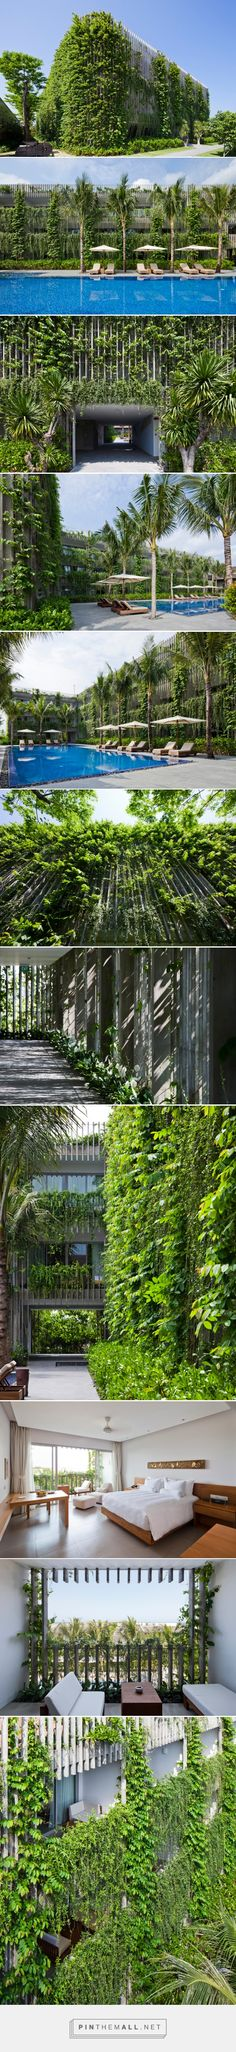 vo trong nghia blends greenery with concrete louvers in vietnamese naman retreat - created via http://pinthemall.net